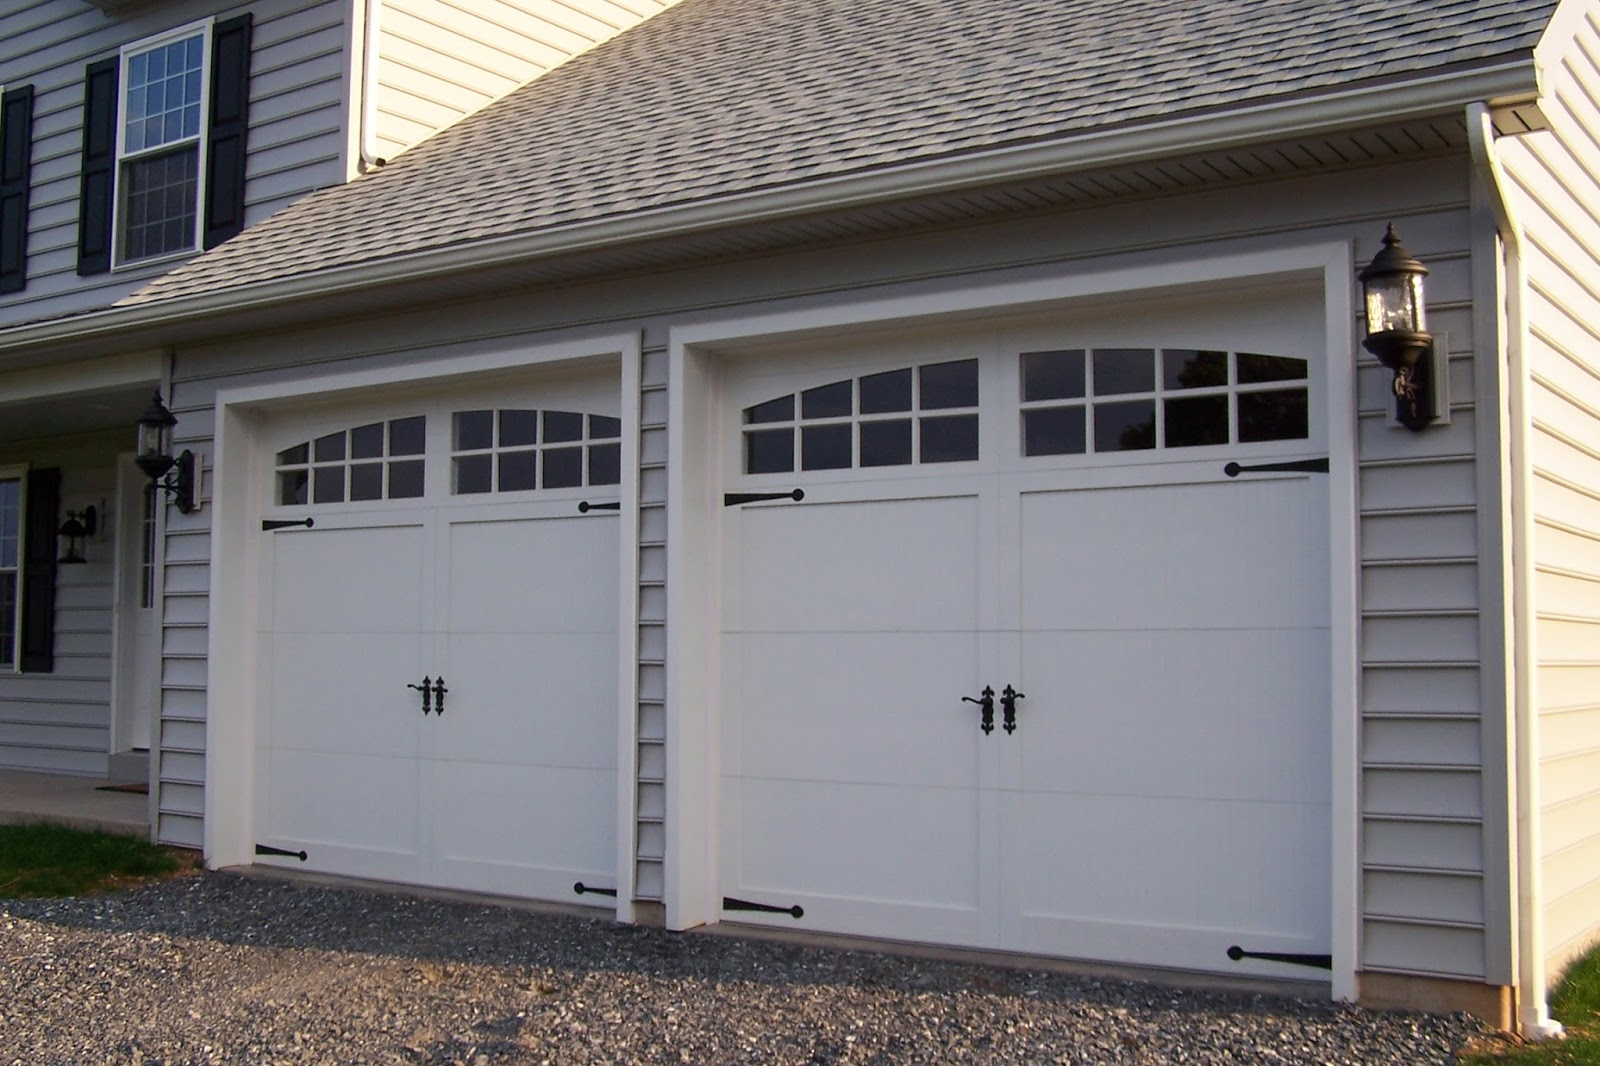 Gate Repair Company North Hollywood. Garage Door Repair Universal City